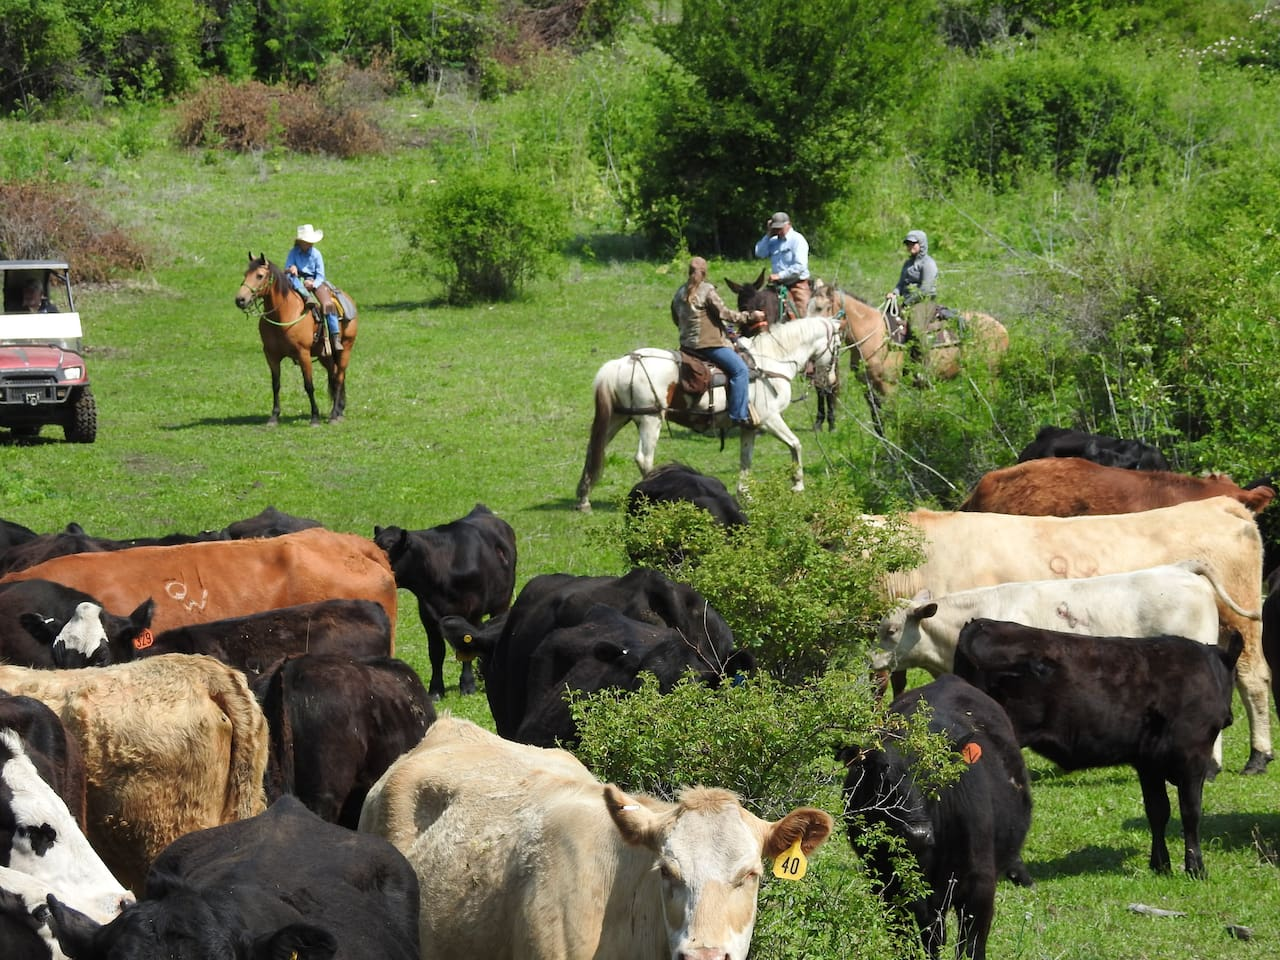 Saddle up, herd 'em up, move 'em out! Take part in this fun adventure. This is the real deal! You will travel through a variety of terrain and the cattle tend to try to wander off. It's your job to keep them together and round up the stragglers